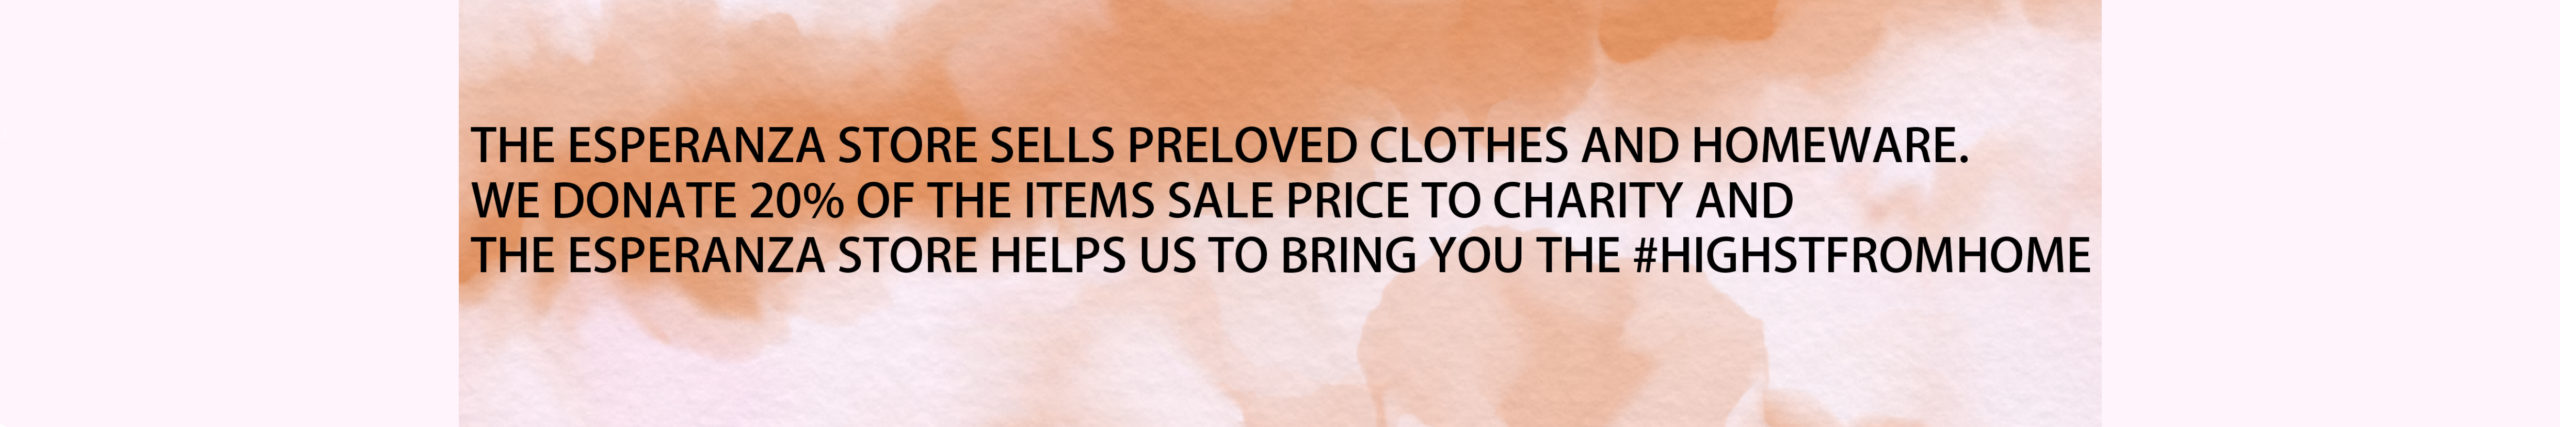 THE ESPERANZA STORE SELLS PRELOVED CLOTHES AND HOMEWARE. WE DONATE 20% OF THE ITEMS SALE PRICE TO CHARITY AND THE ESPERANZA STORE HELPS US TO BRING YOU THE #HIGHSTFROMHOME